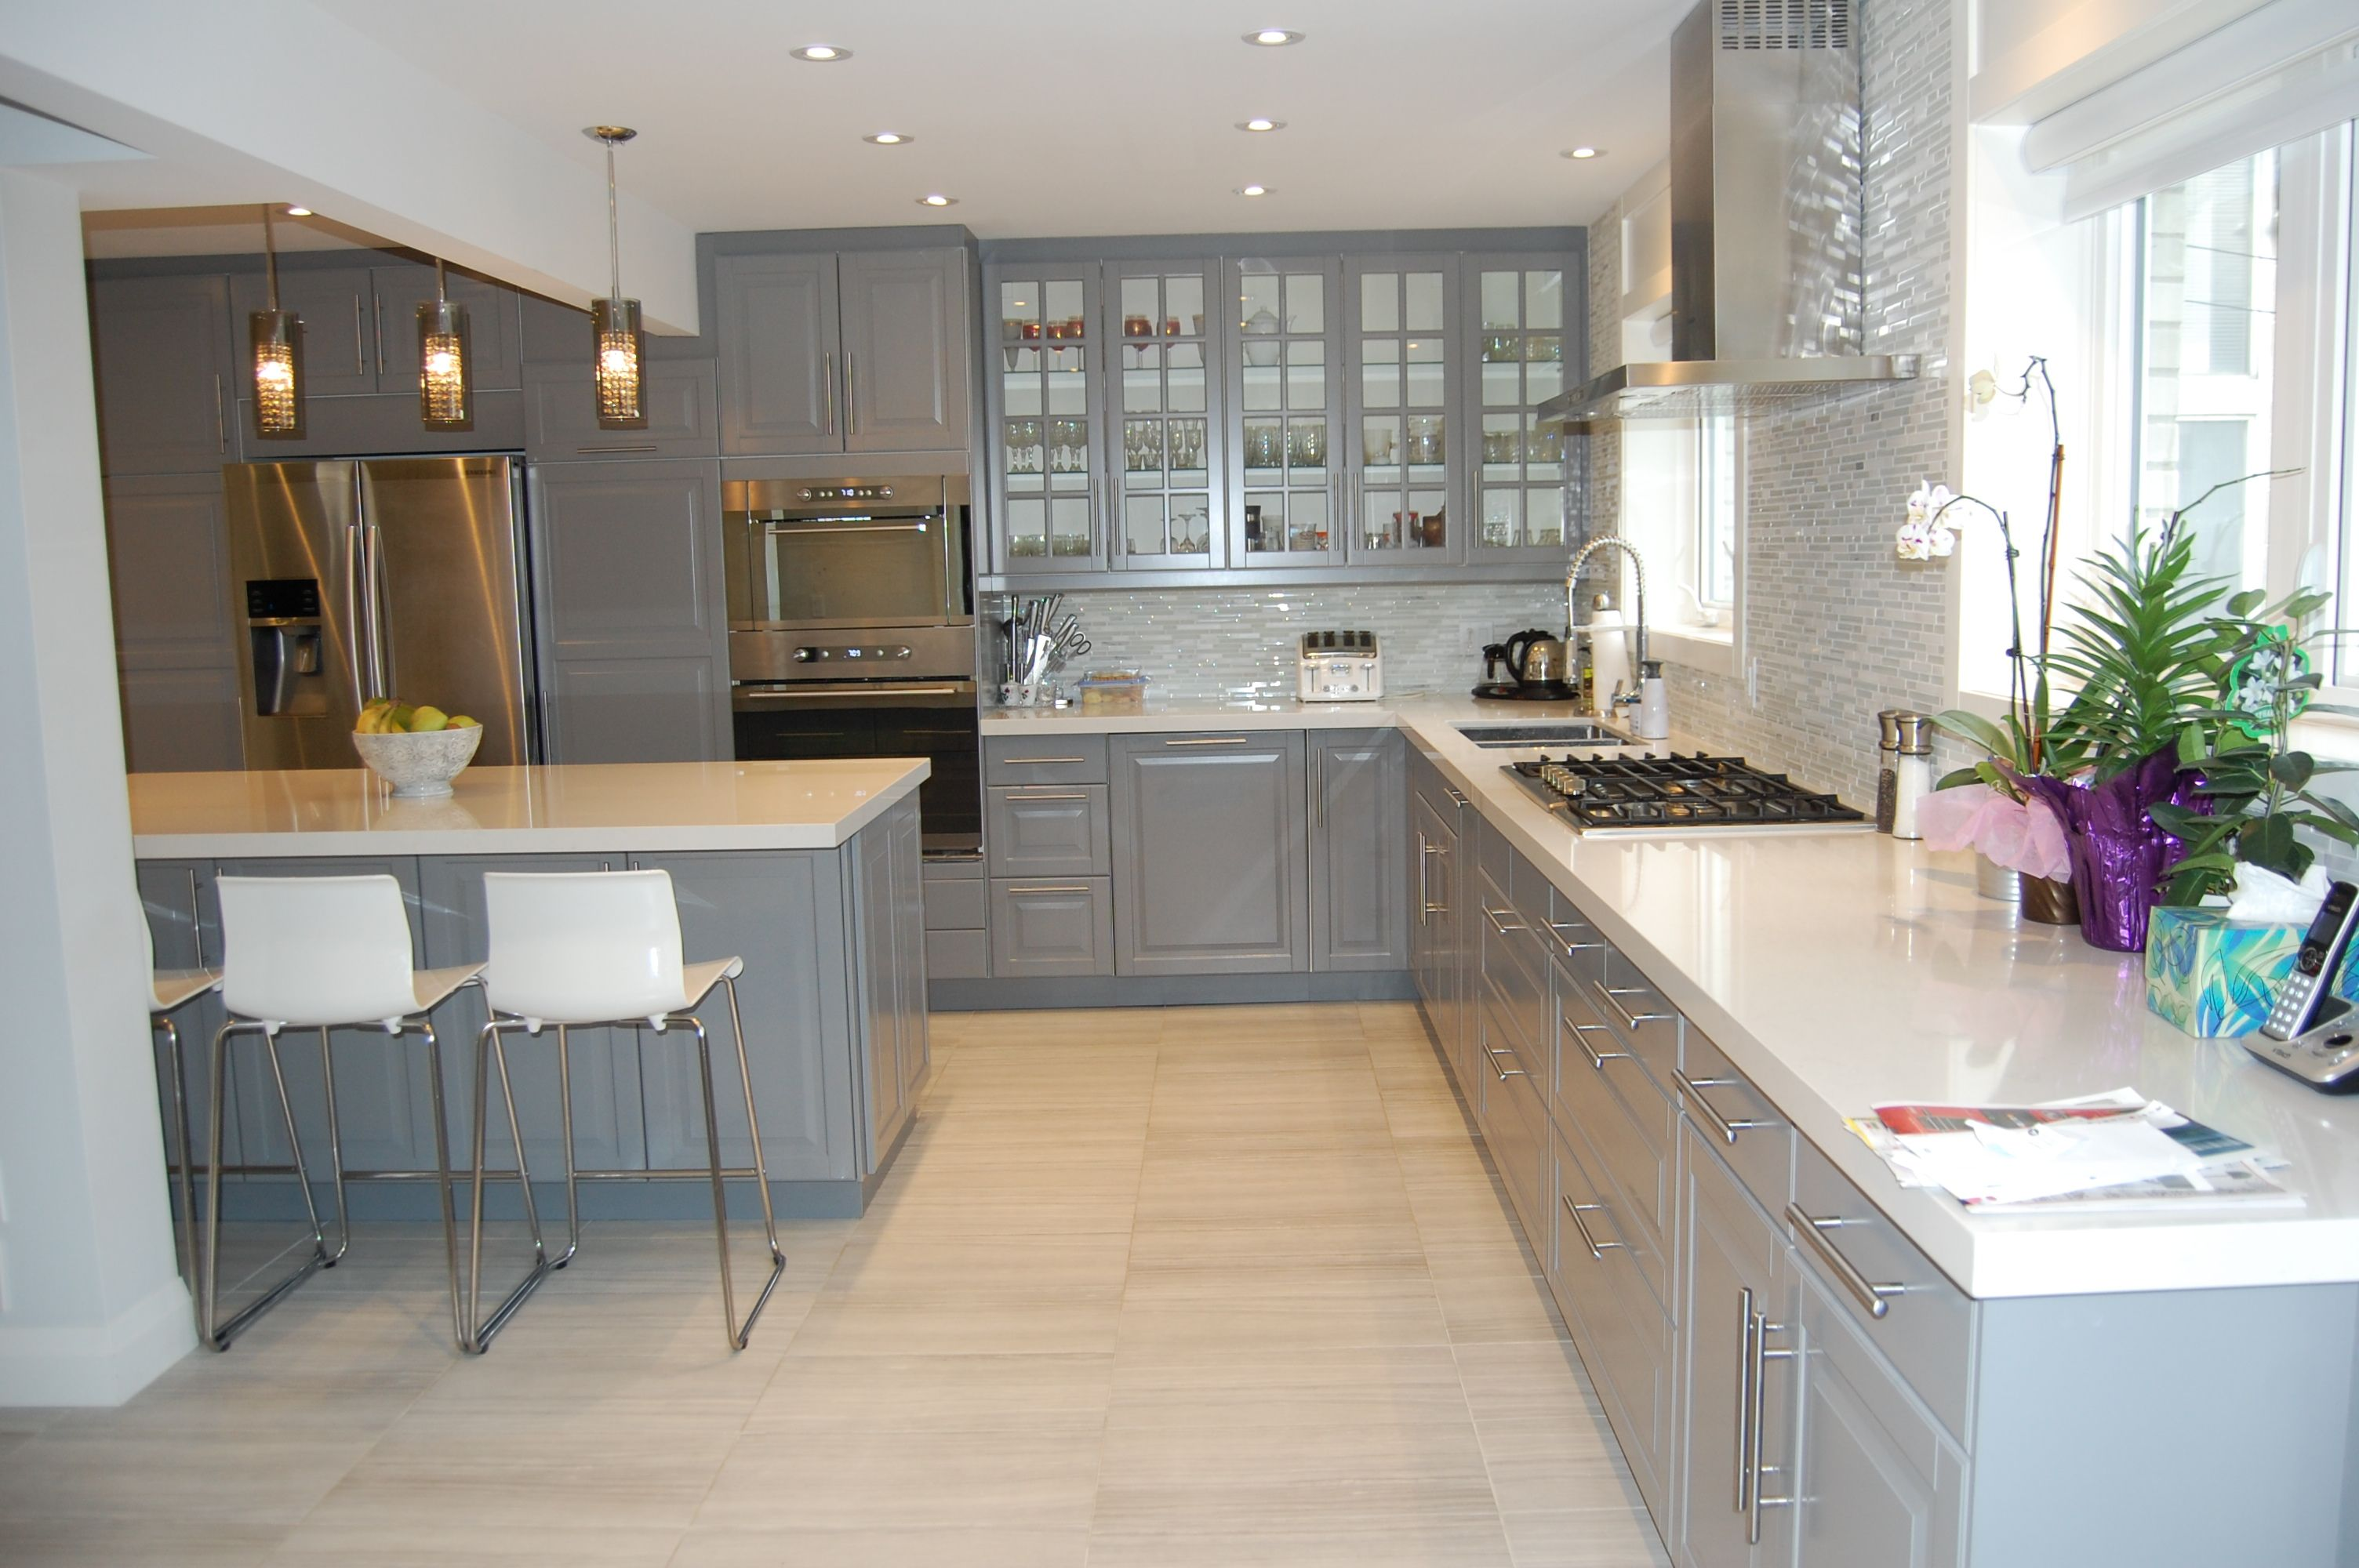 Best Pin By Adriansuk On Kuchnia Pinterest Kitchens Farm 400 x 300